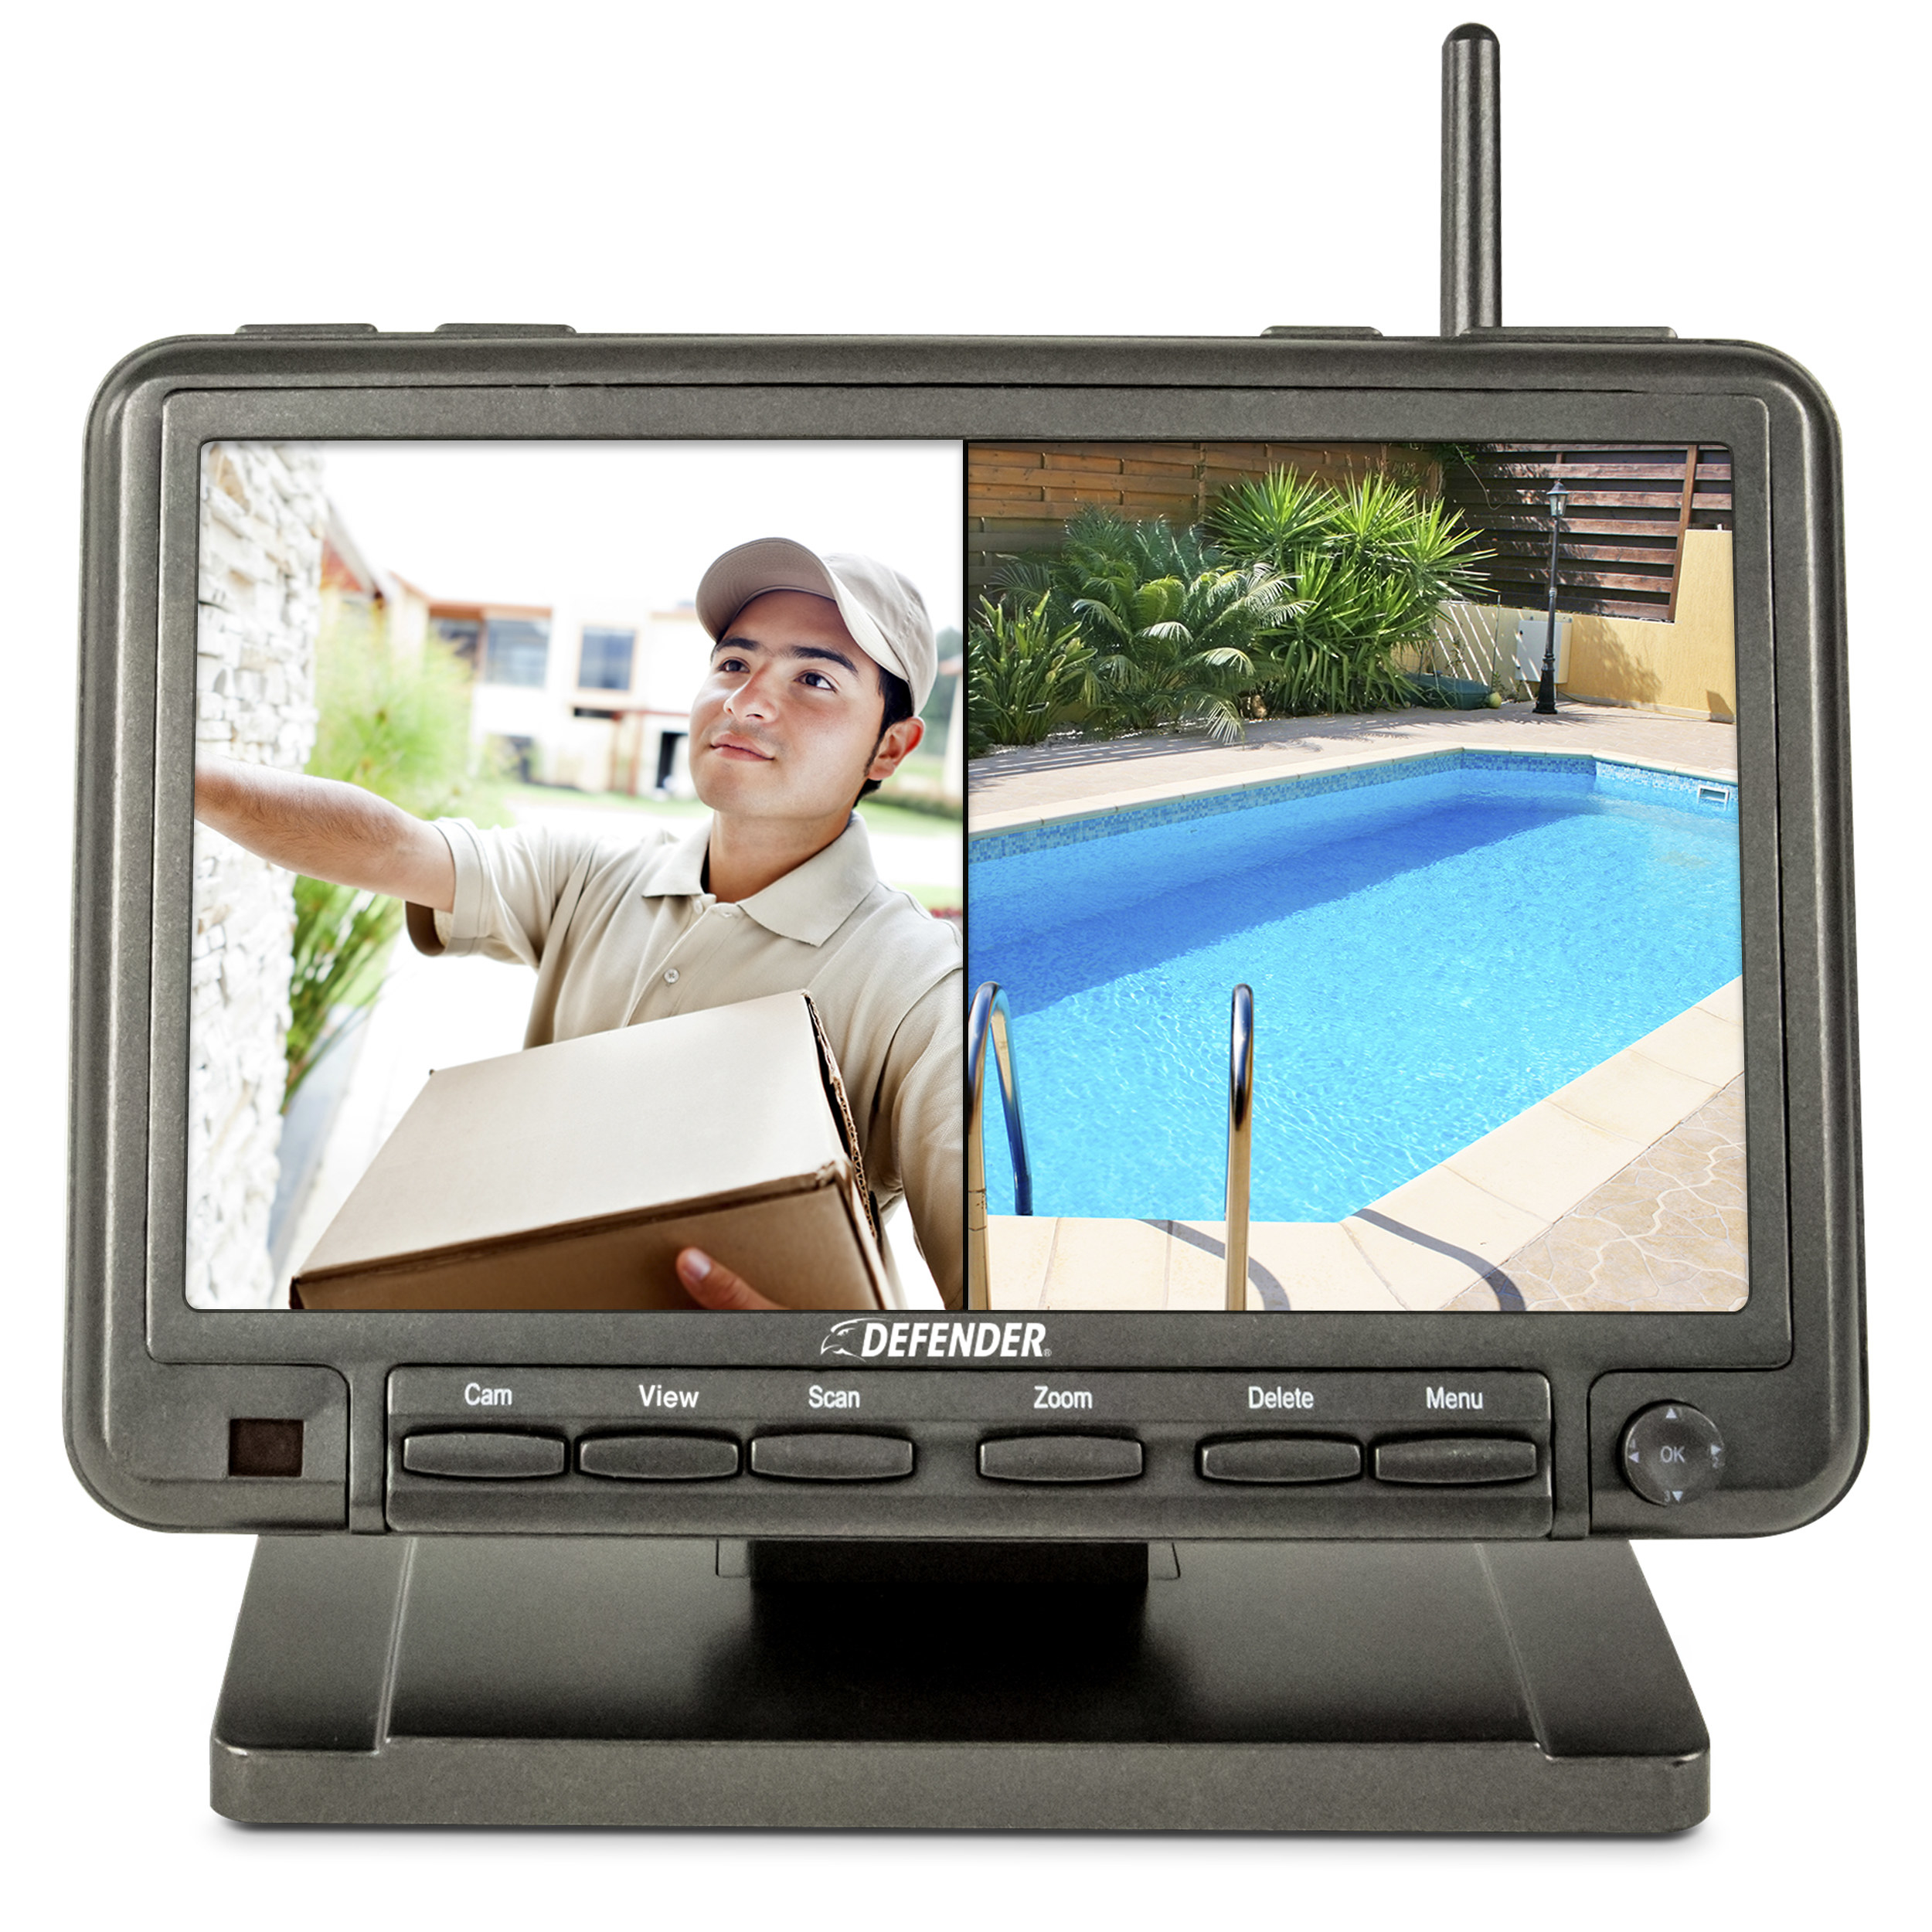 The monitor with a split screen showing a delivery man and a pool